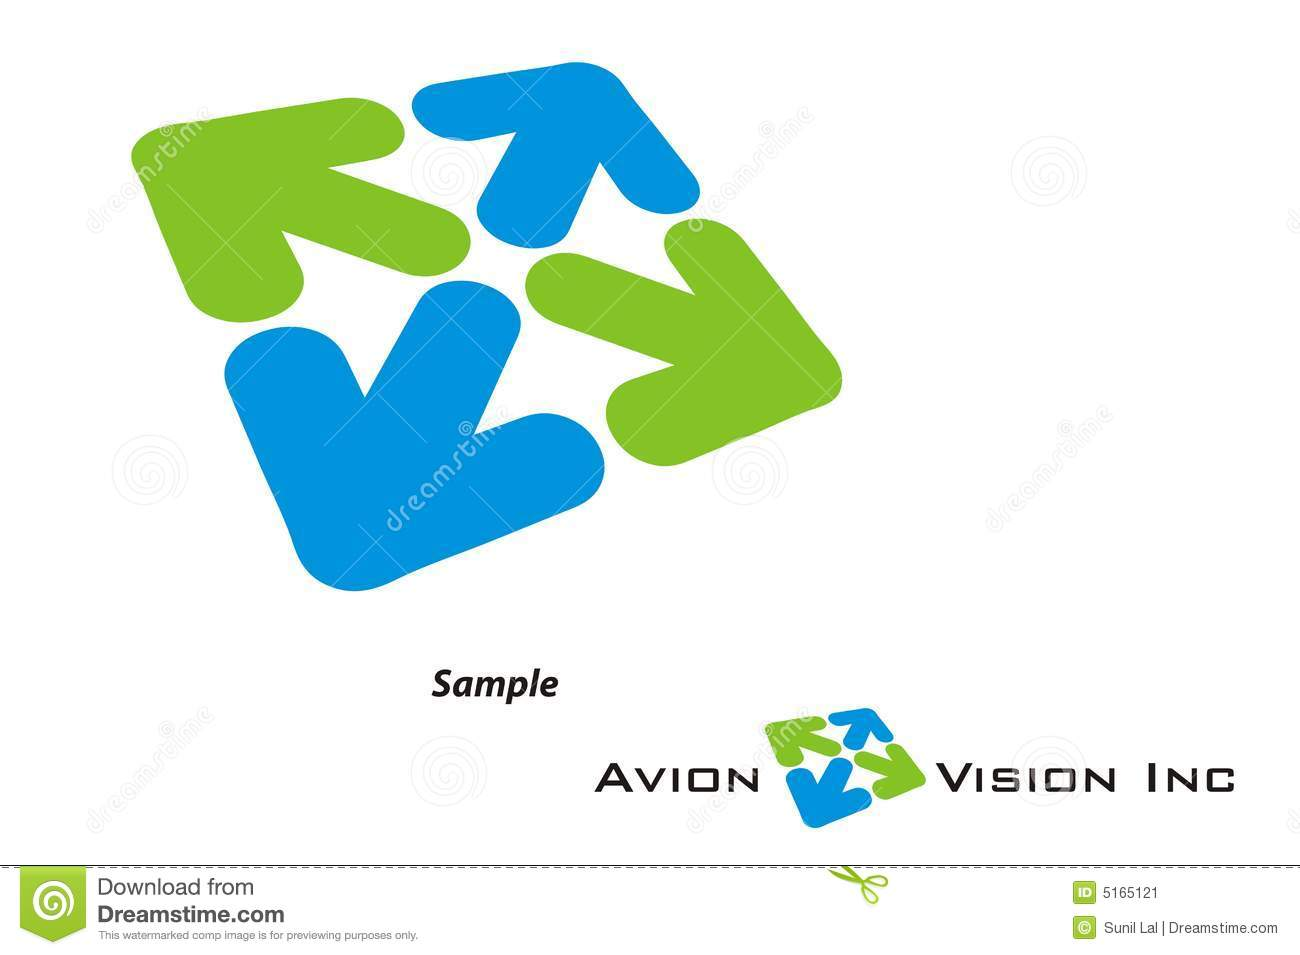 Logo - Travel/Tourism/Avaition Company